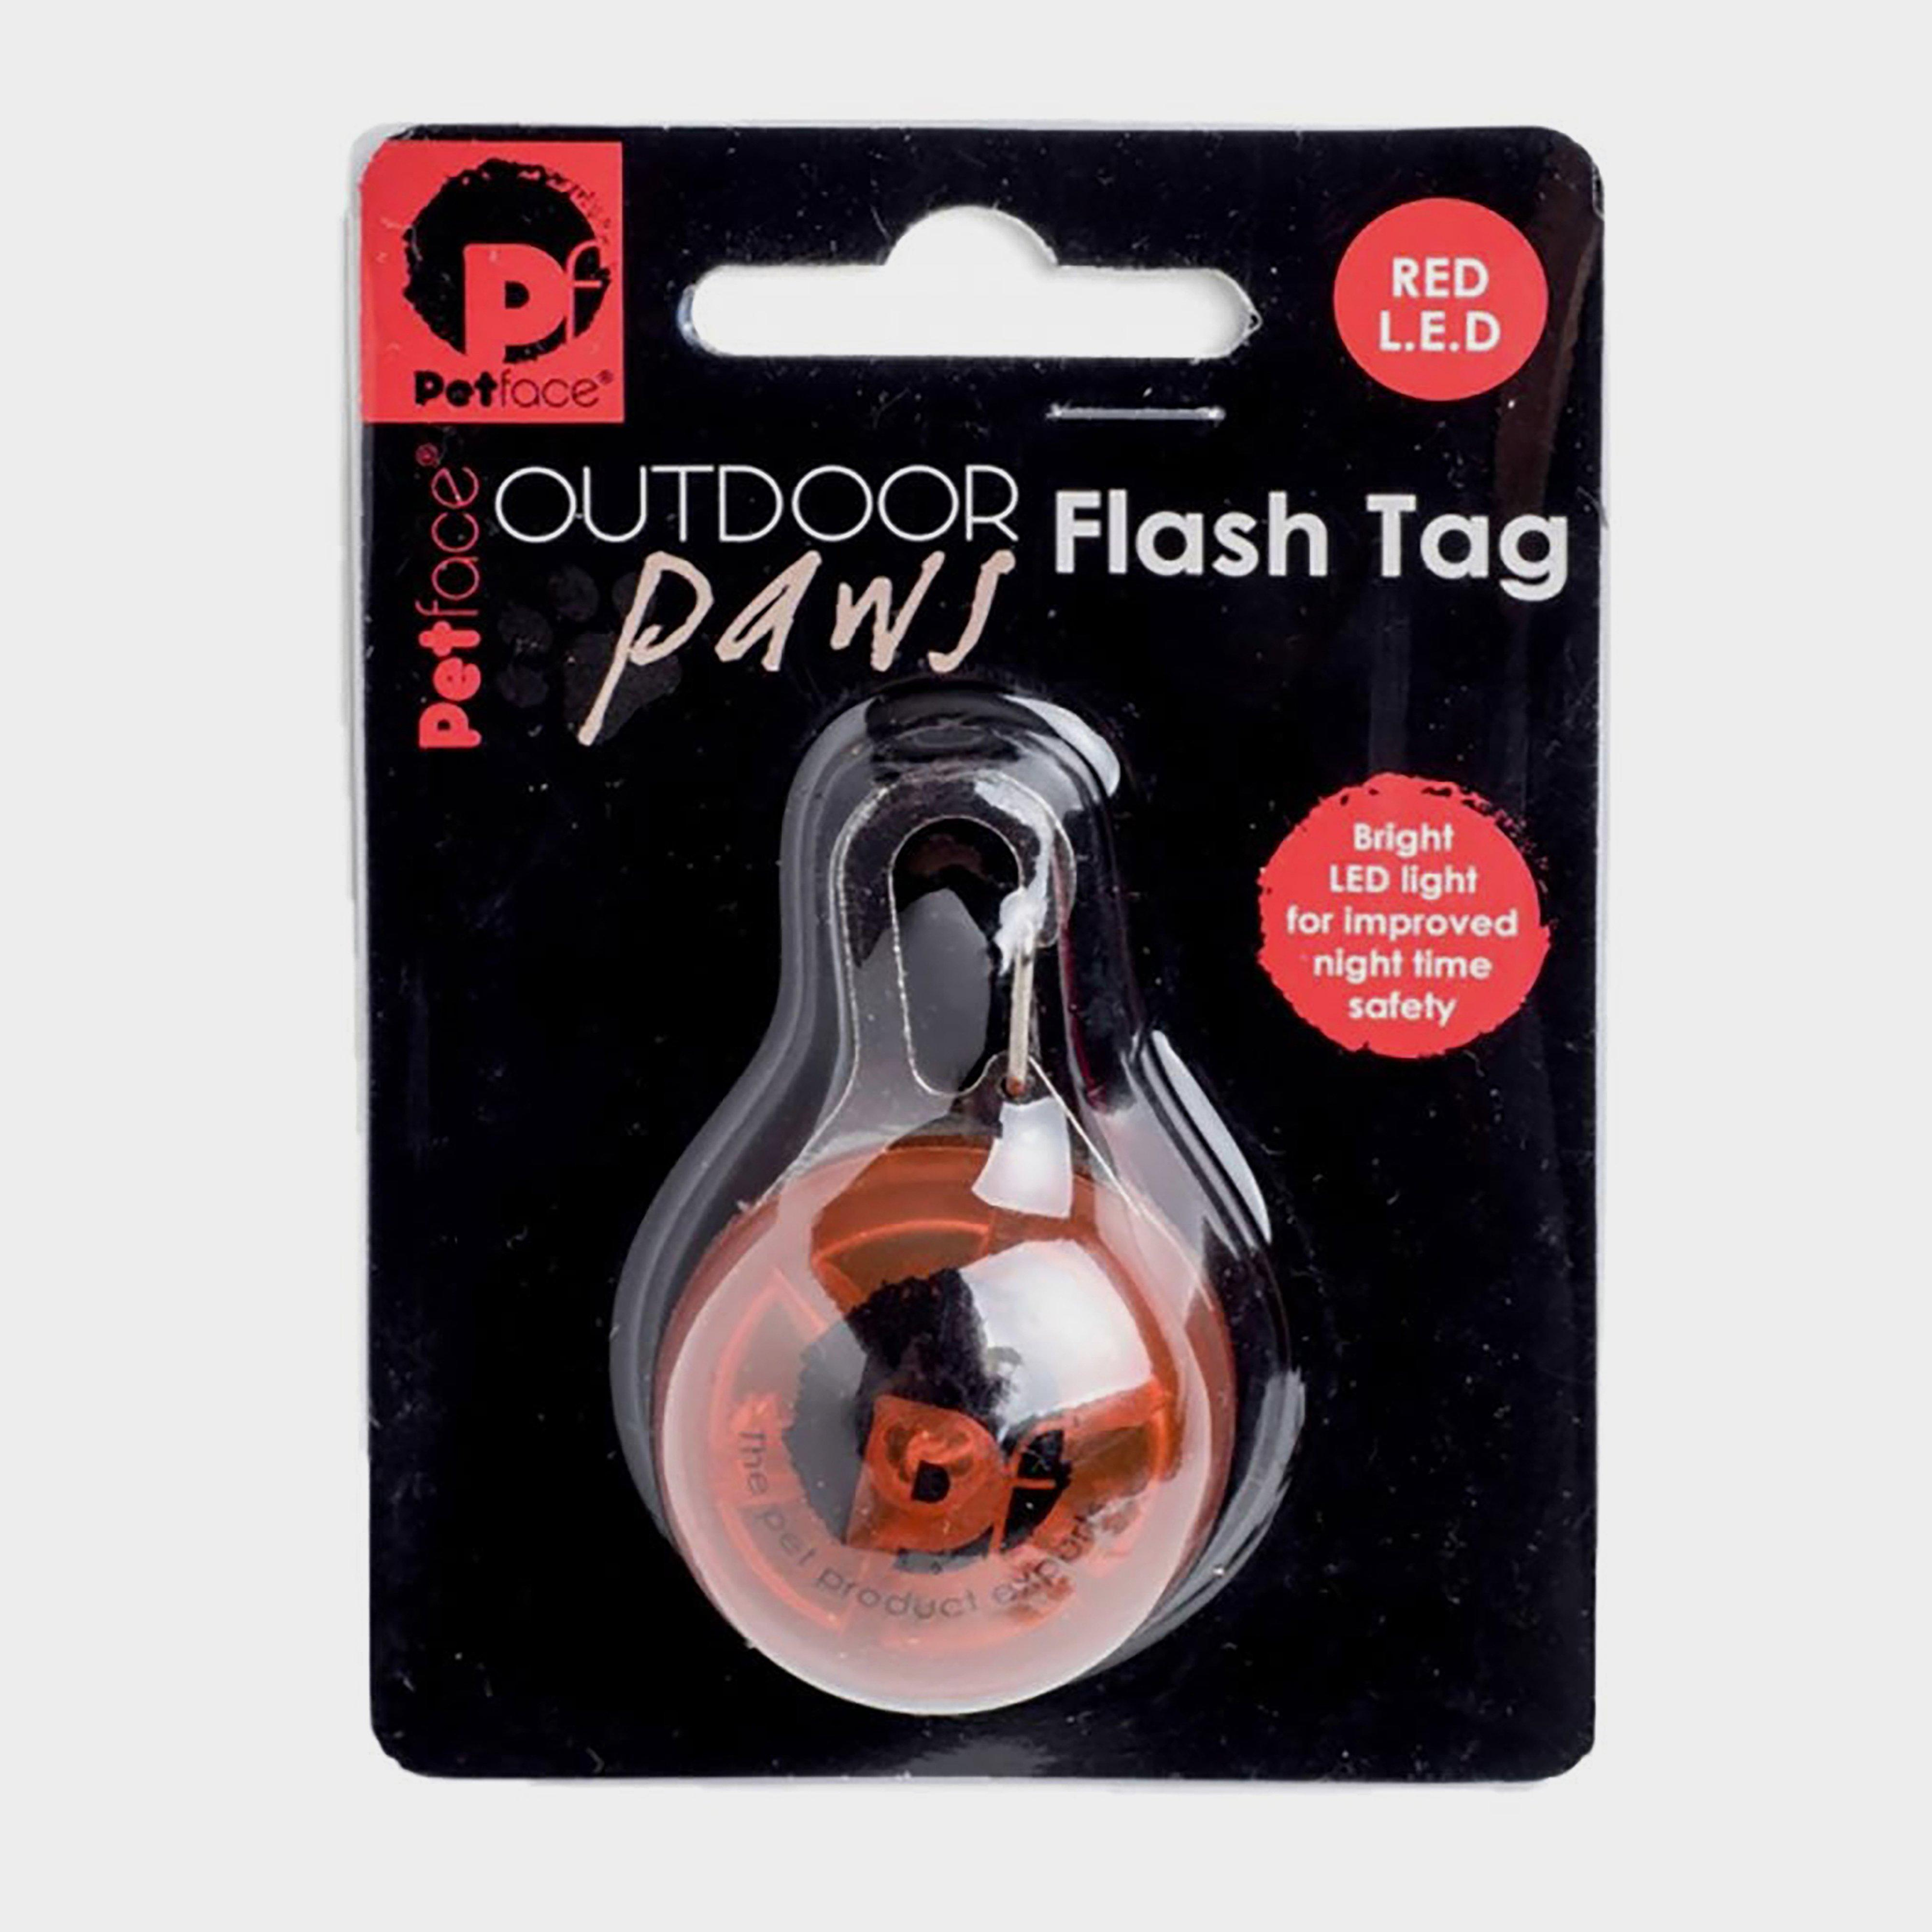 Image of Petface Outdoor Paws Flash Tag - Red/Red, RED/RED